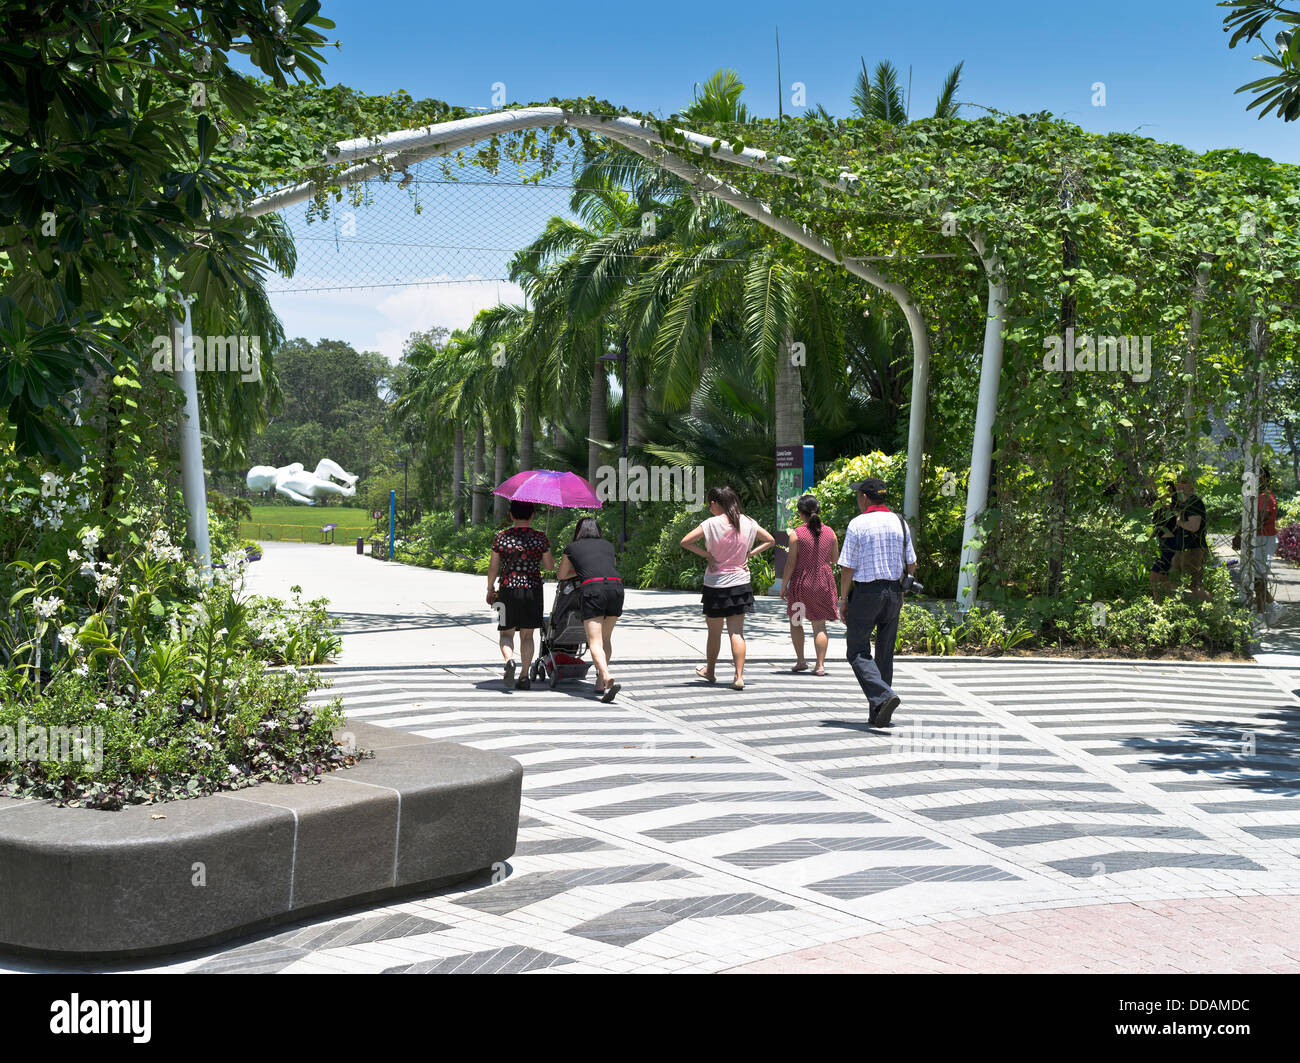 Garden By The Bay Baby Sculpture dh gardenthe bay singapore family walking gardens path baby